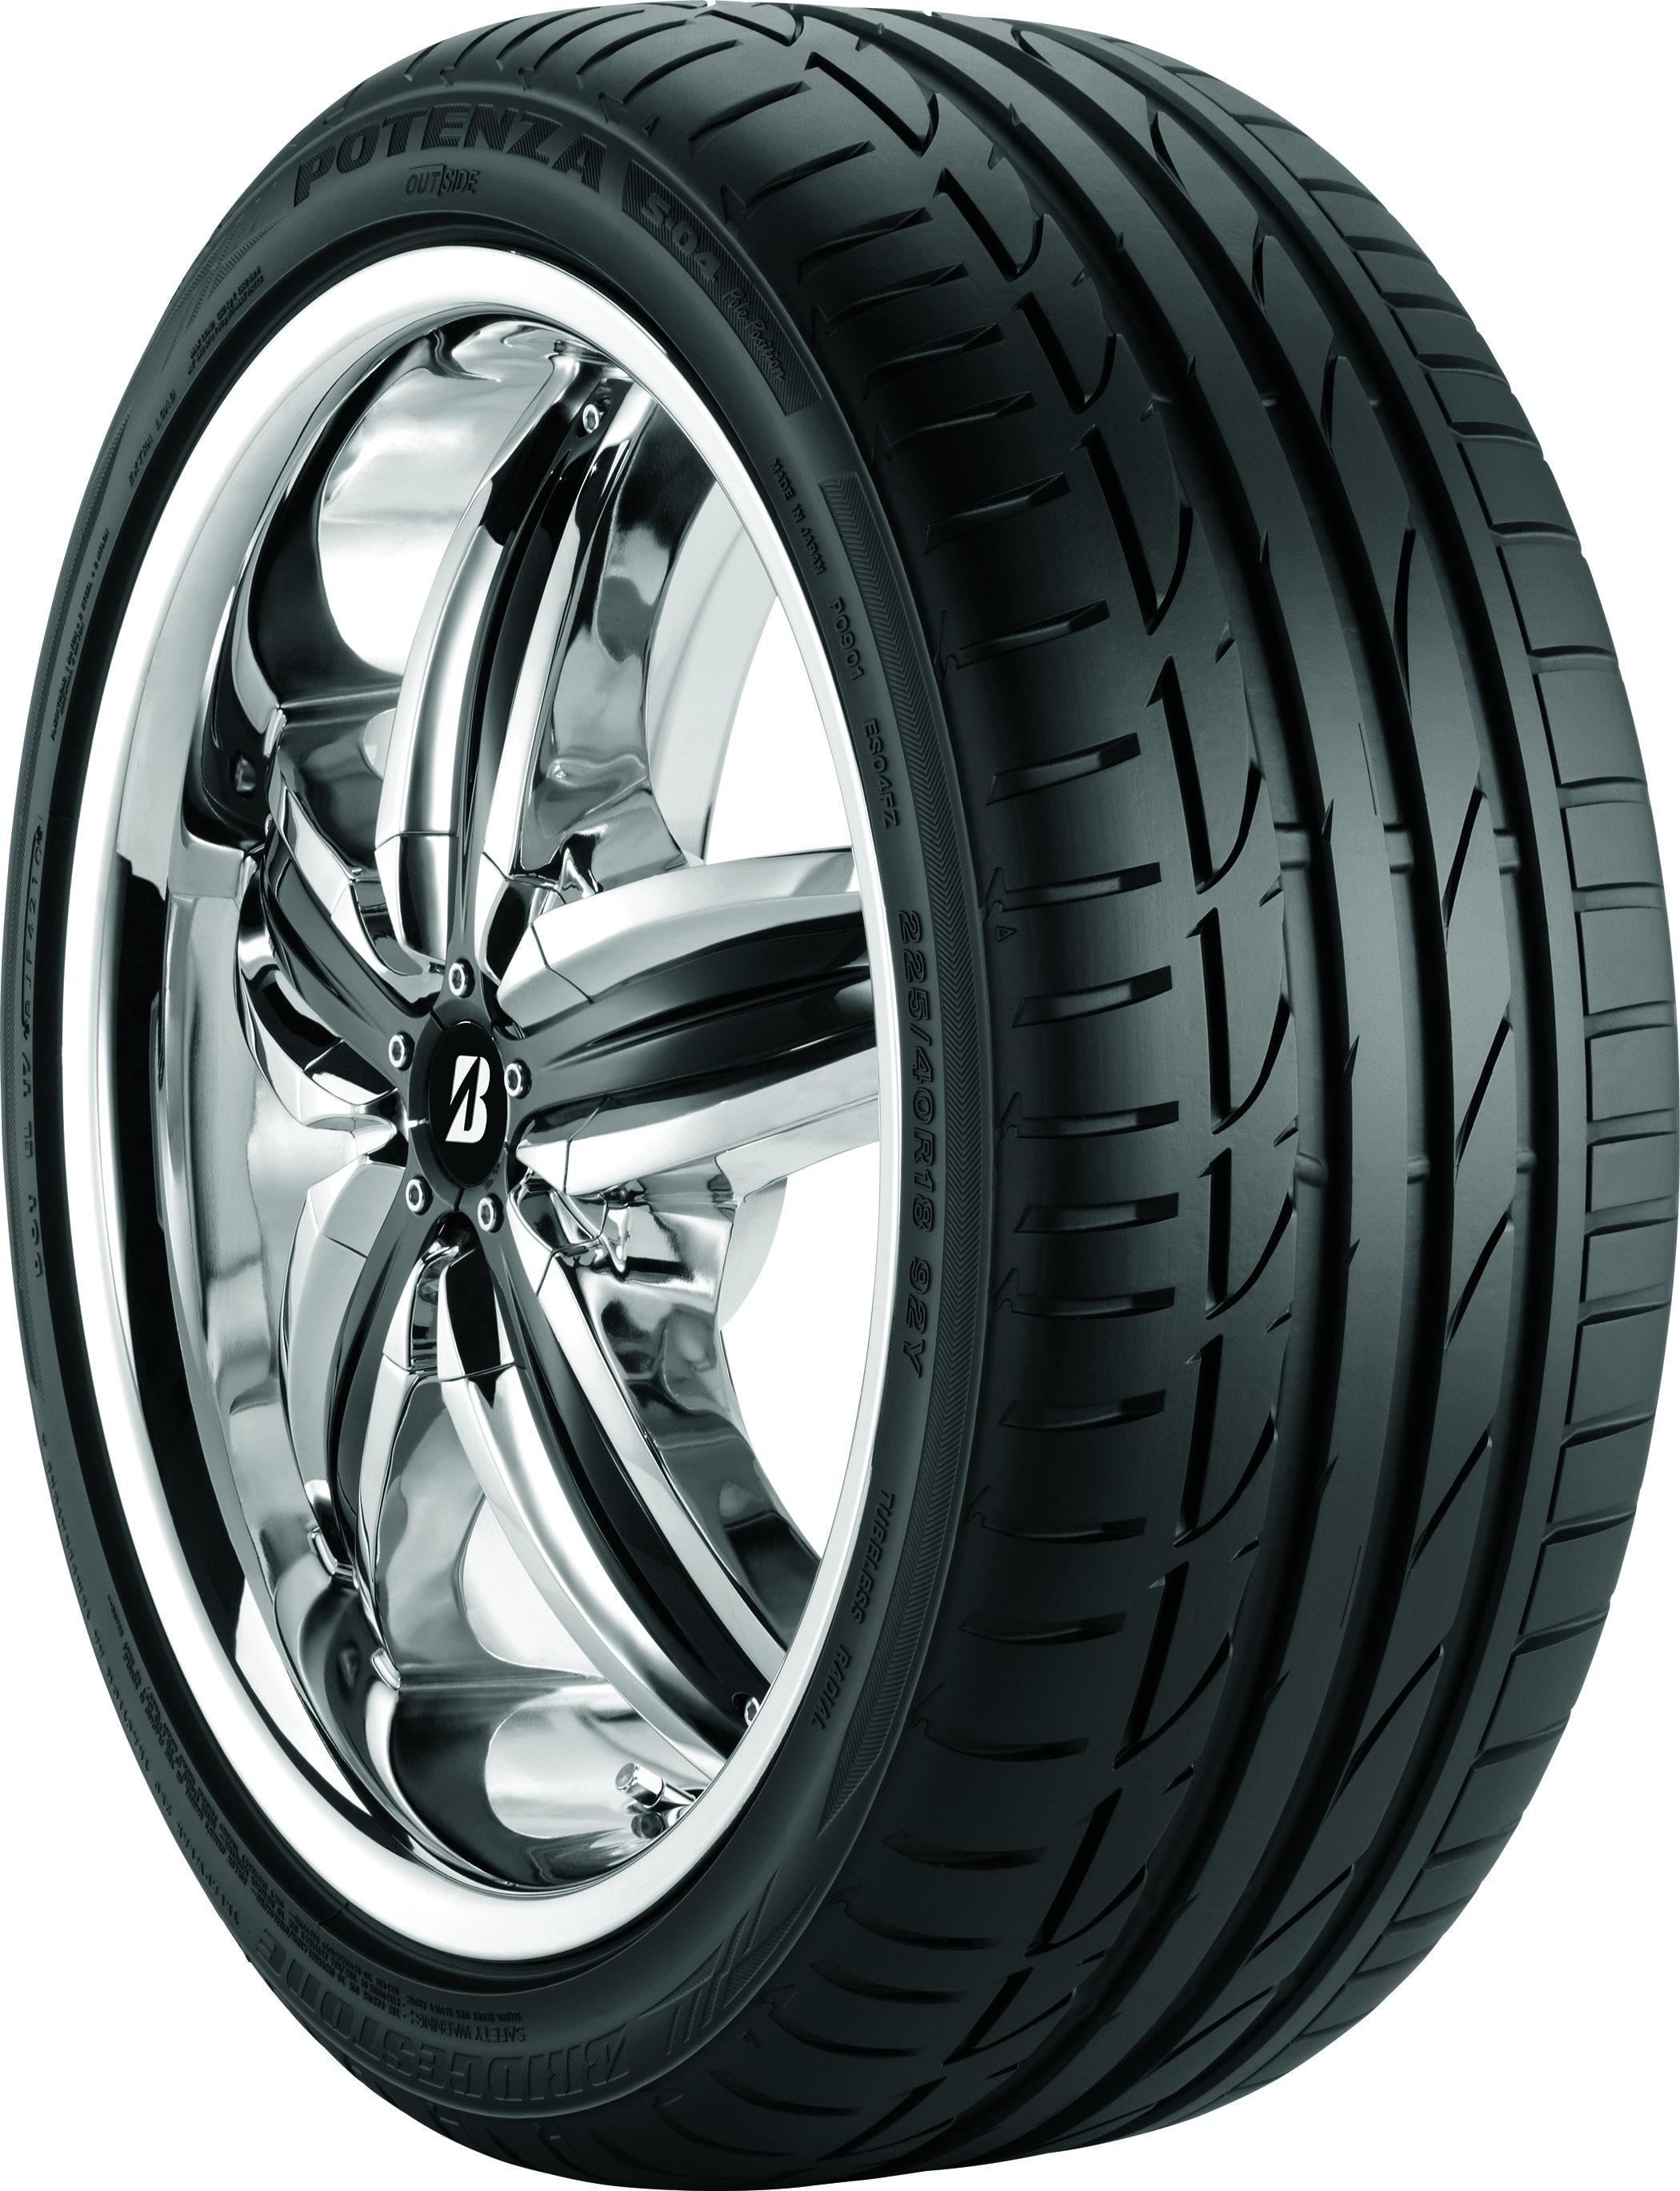 Potenza S04 Pole Position Tire